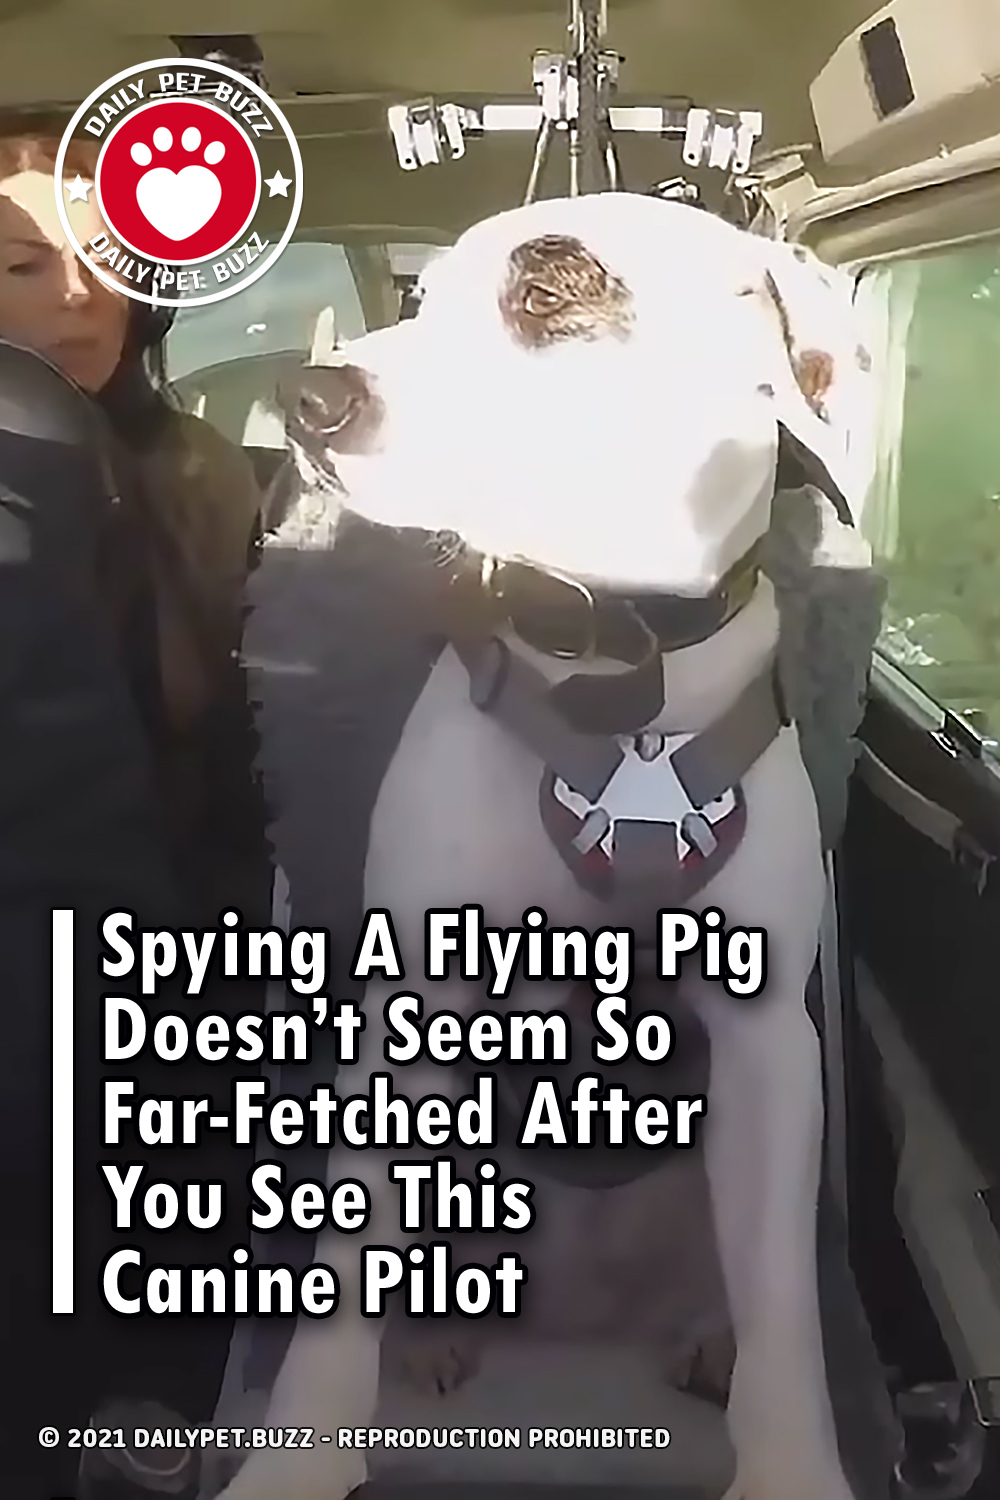 Spying A Flying Pig Doesn\'t Seem So Far-Fetched After You See This Canine Pilot